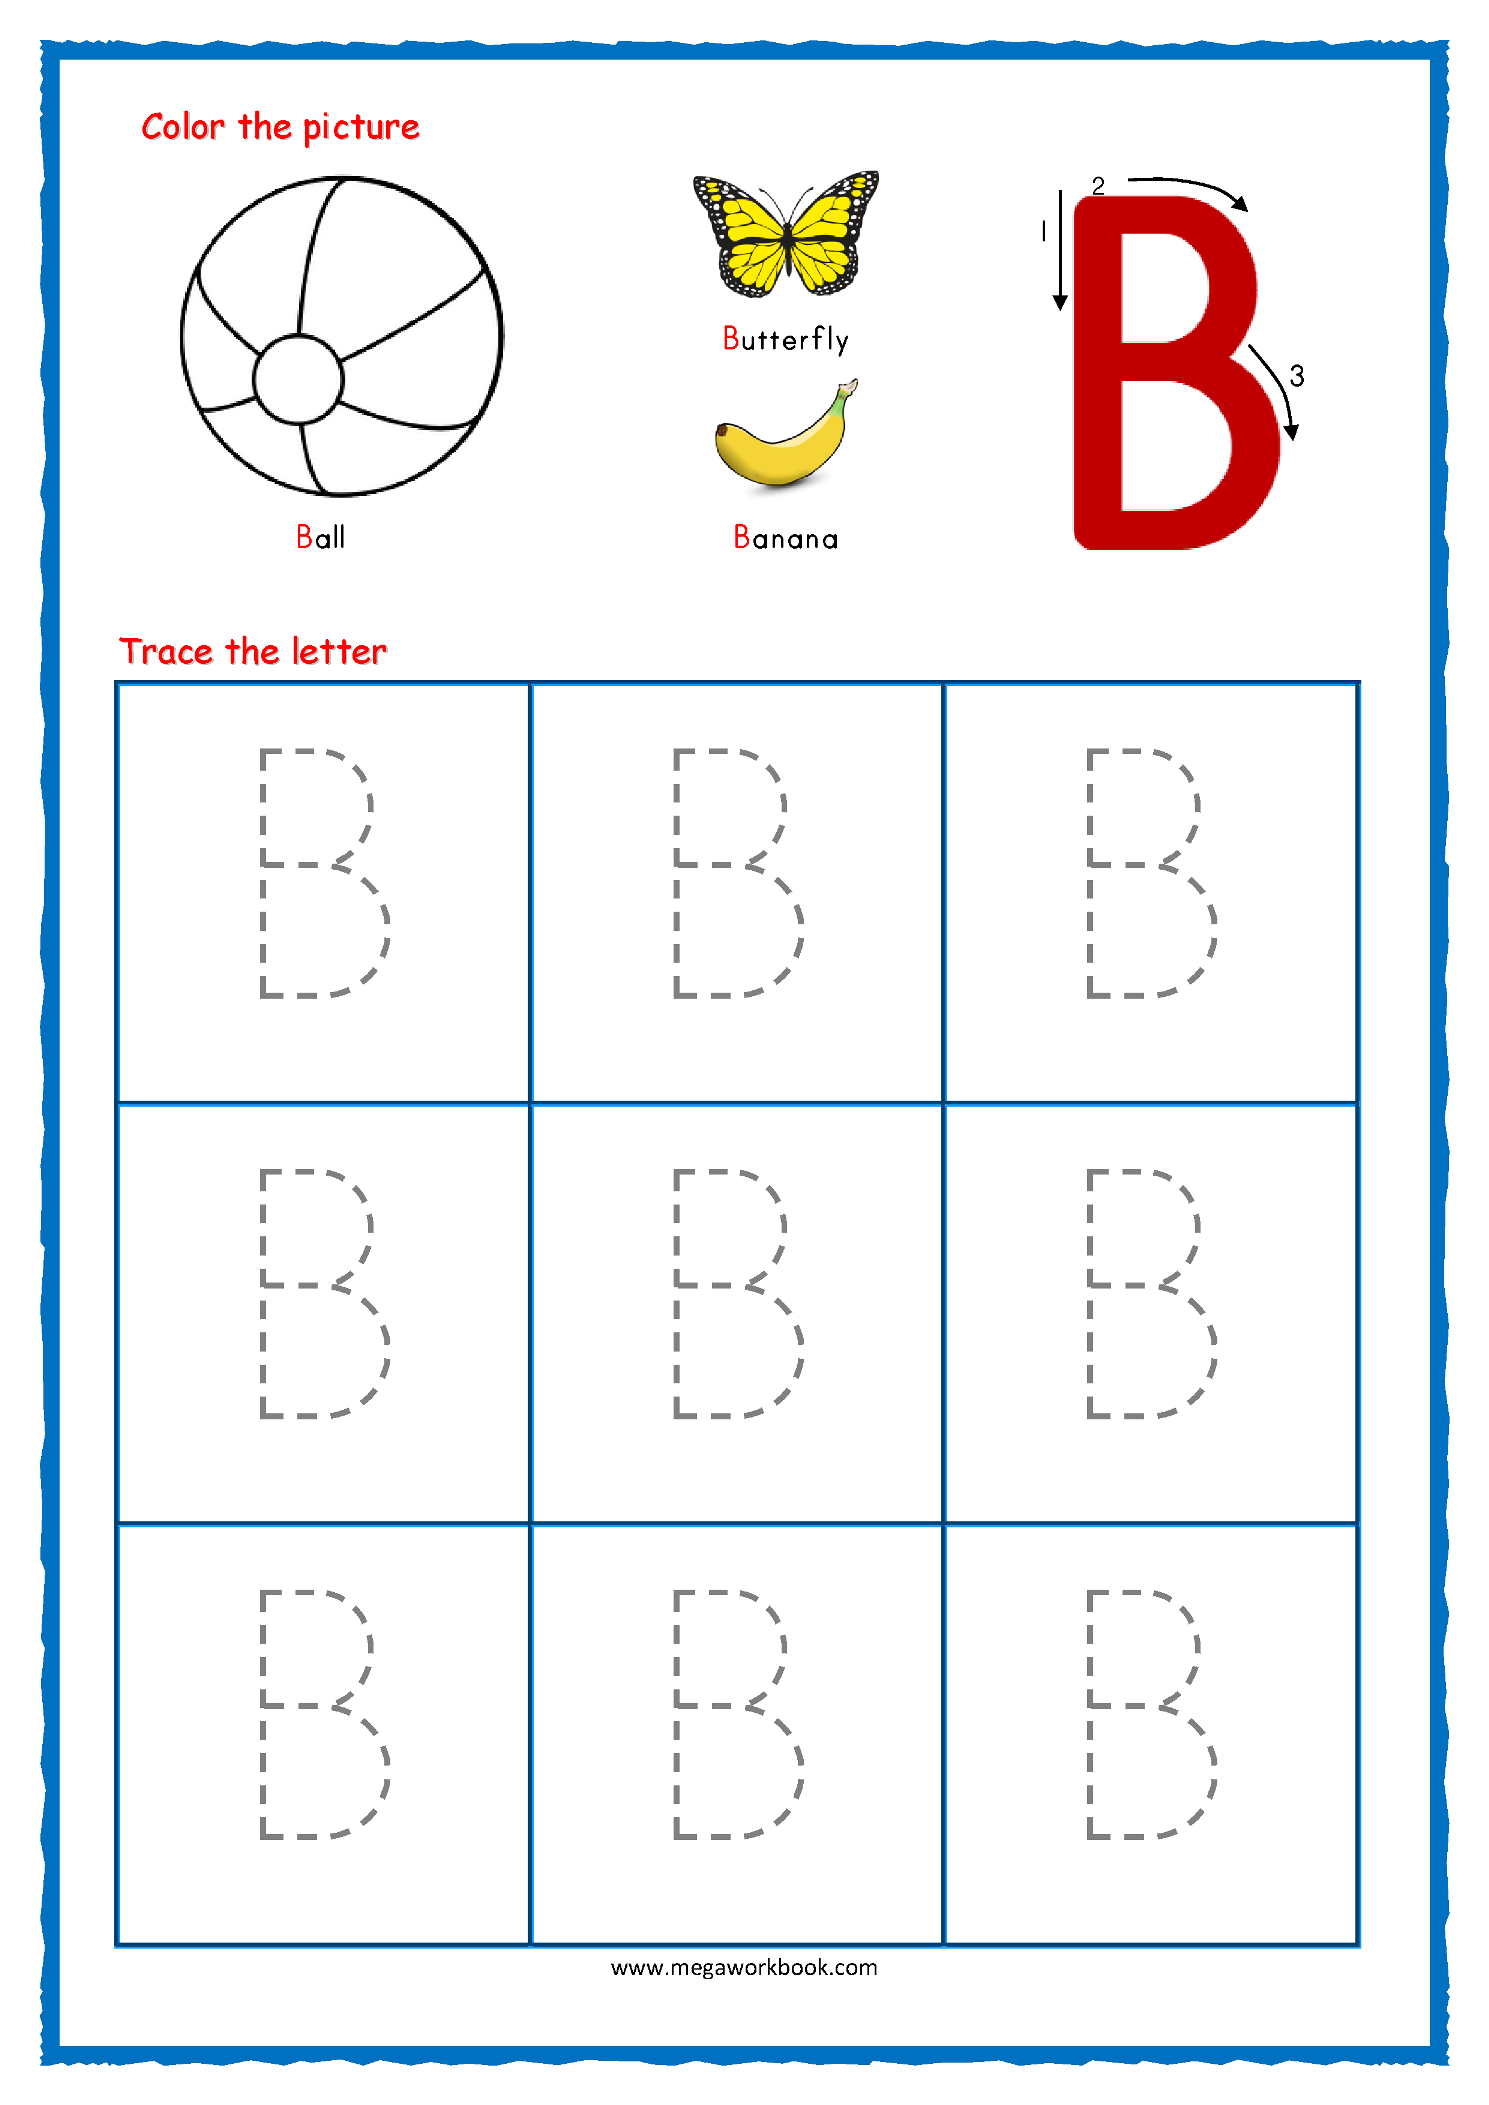 Coloring Book : Letter Tracingts Free Printable Coloring throughout Letter Tracing Worksheets